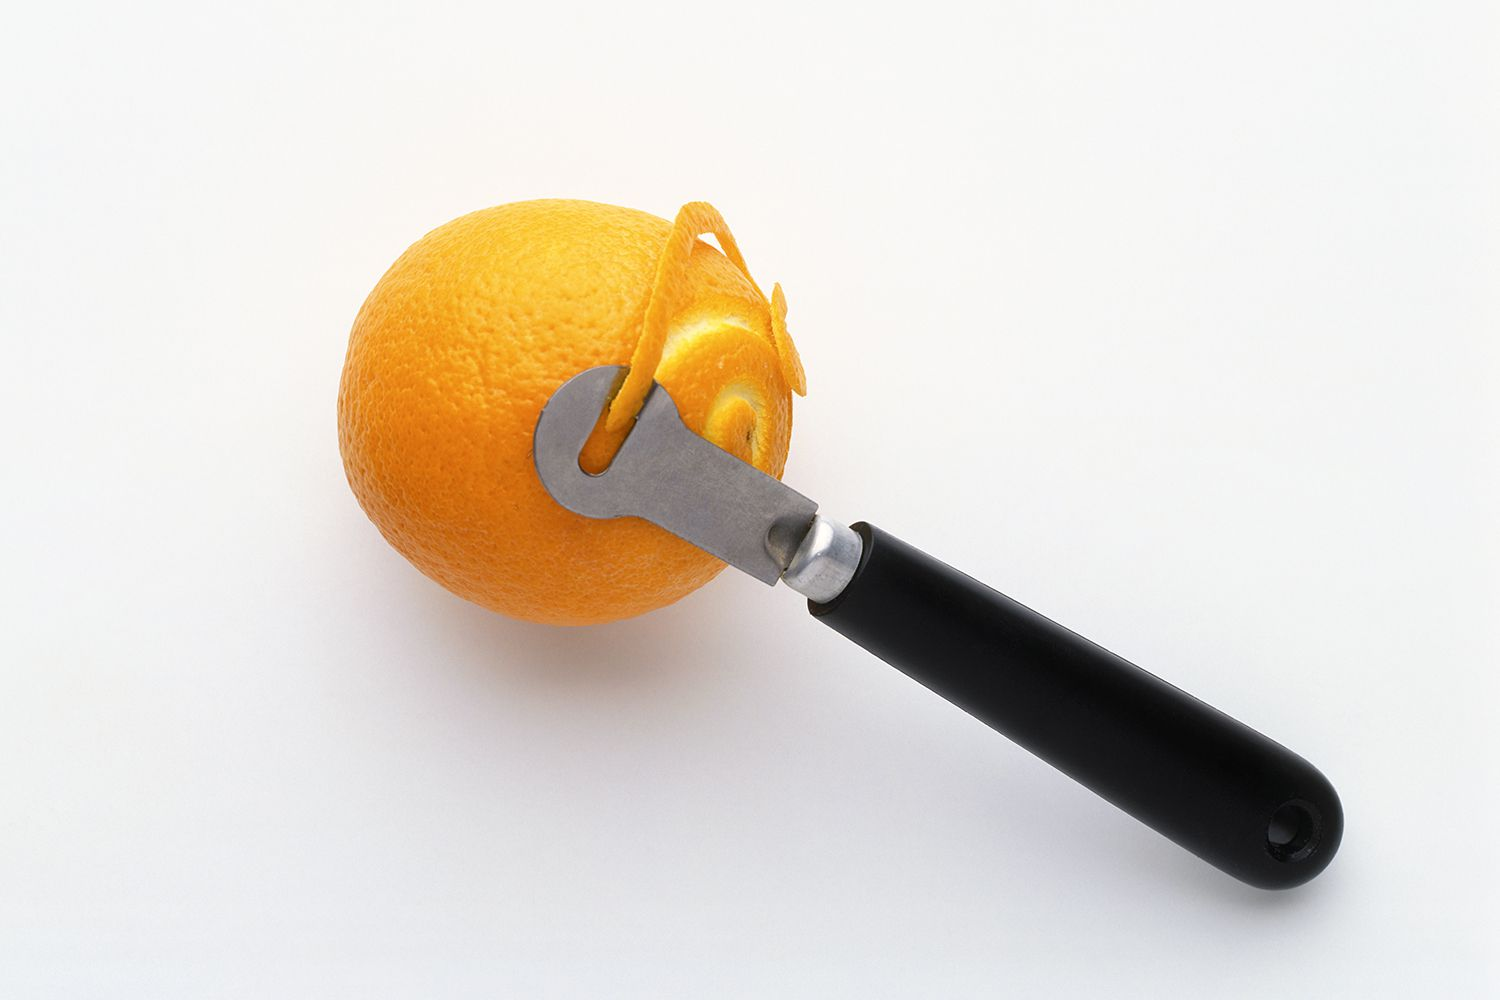 how to cut basic citrus fruit garnishes for drinks